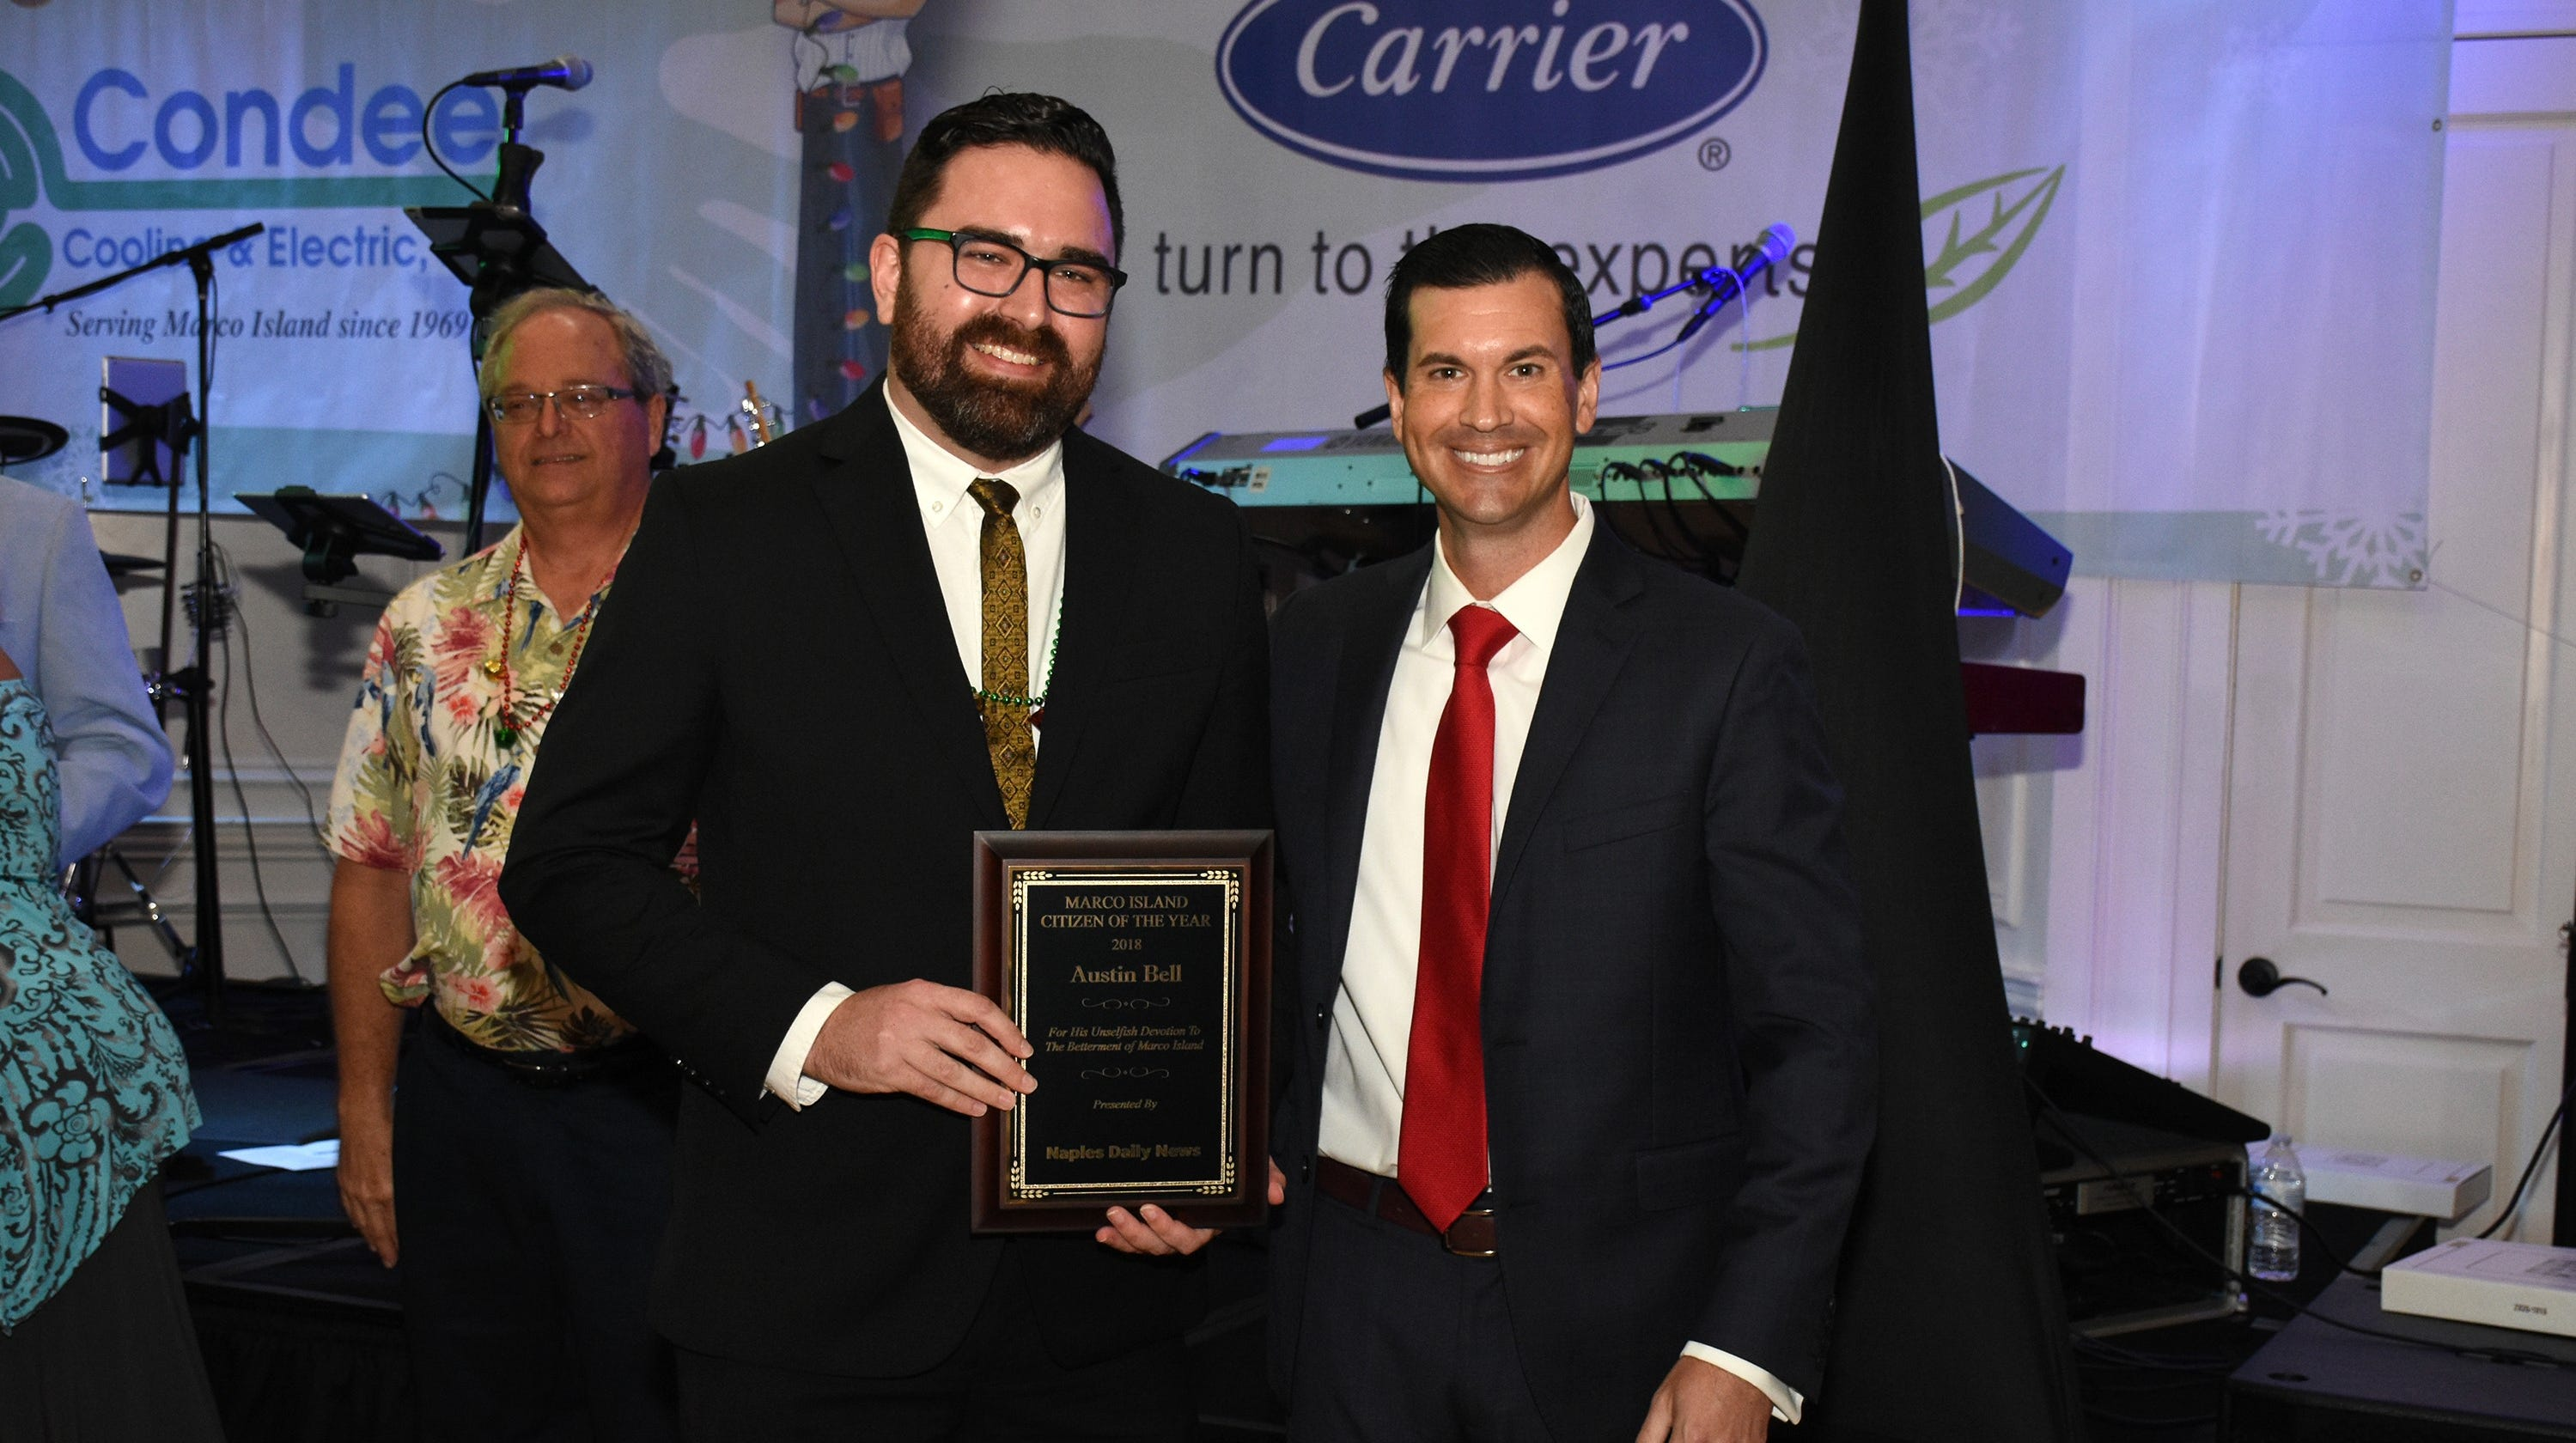 Saturday evening, members of the Marco Island Area Chamber of Commerce met at Hideaway Beach Club, and awarded their two highest honors.